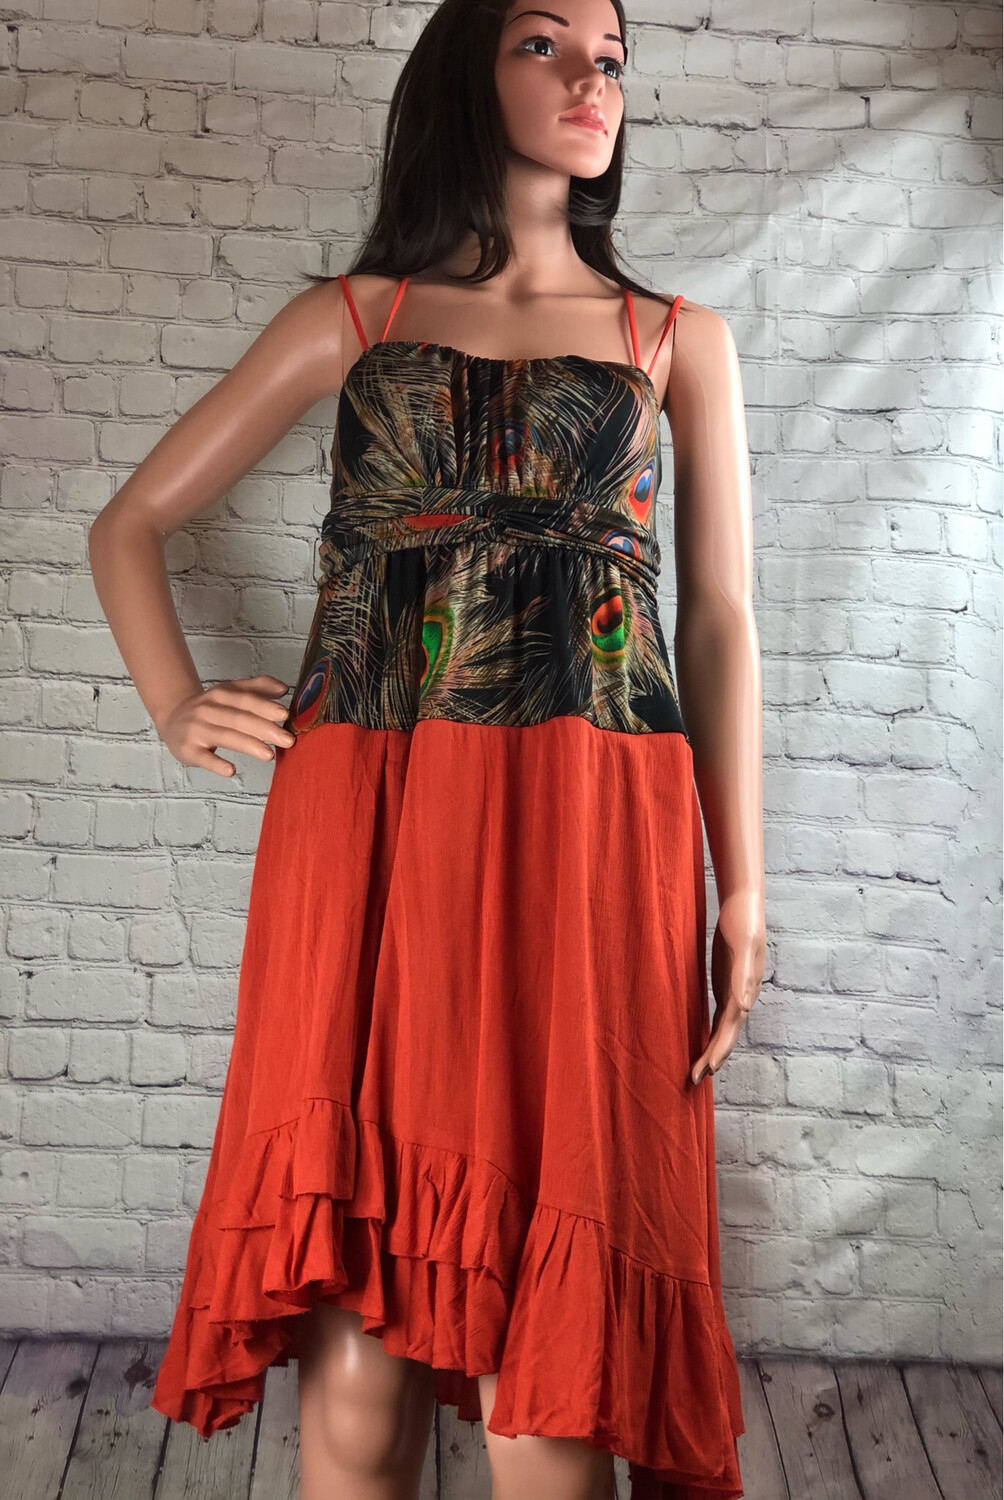 Recycled Peacock Print Crisscross Strap Dress Size Small